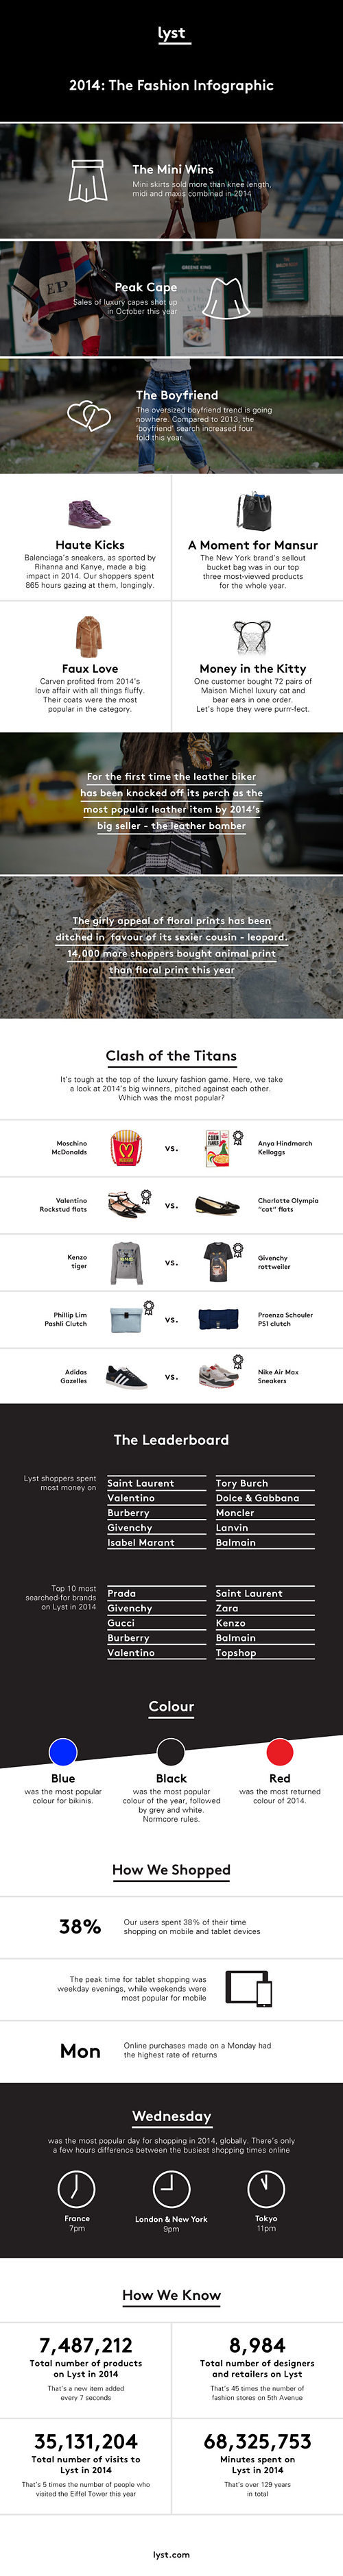 lyst infographic 12 2014 2014 In Fashion Was All About Mansur Gavriel Bags, Miniskirts, and Boyfriend Jeans